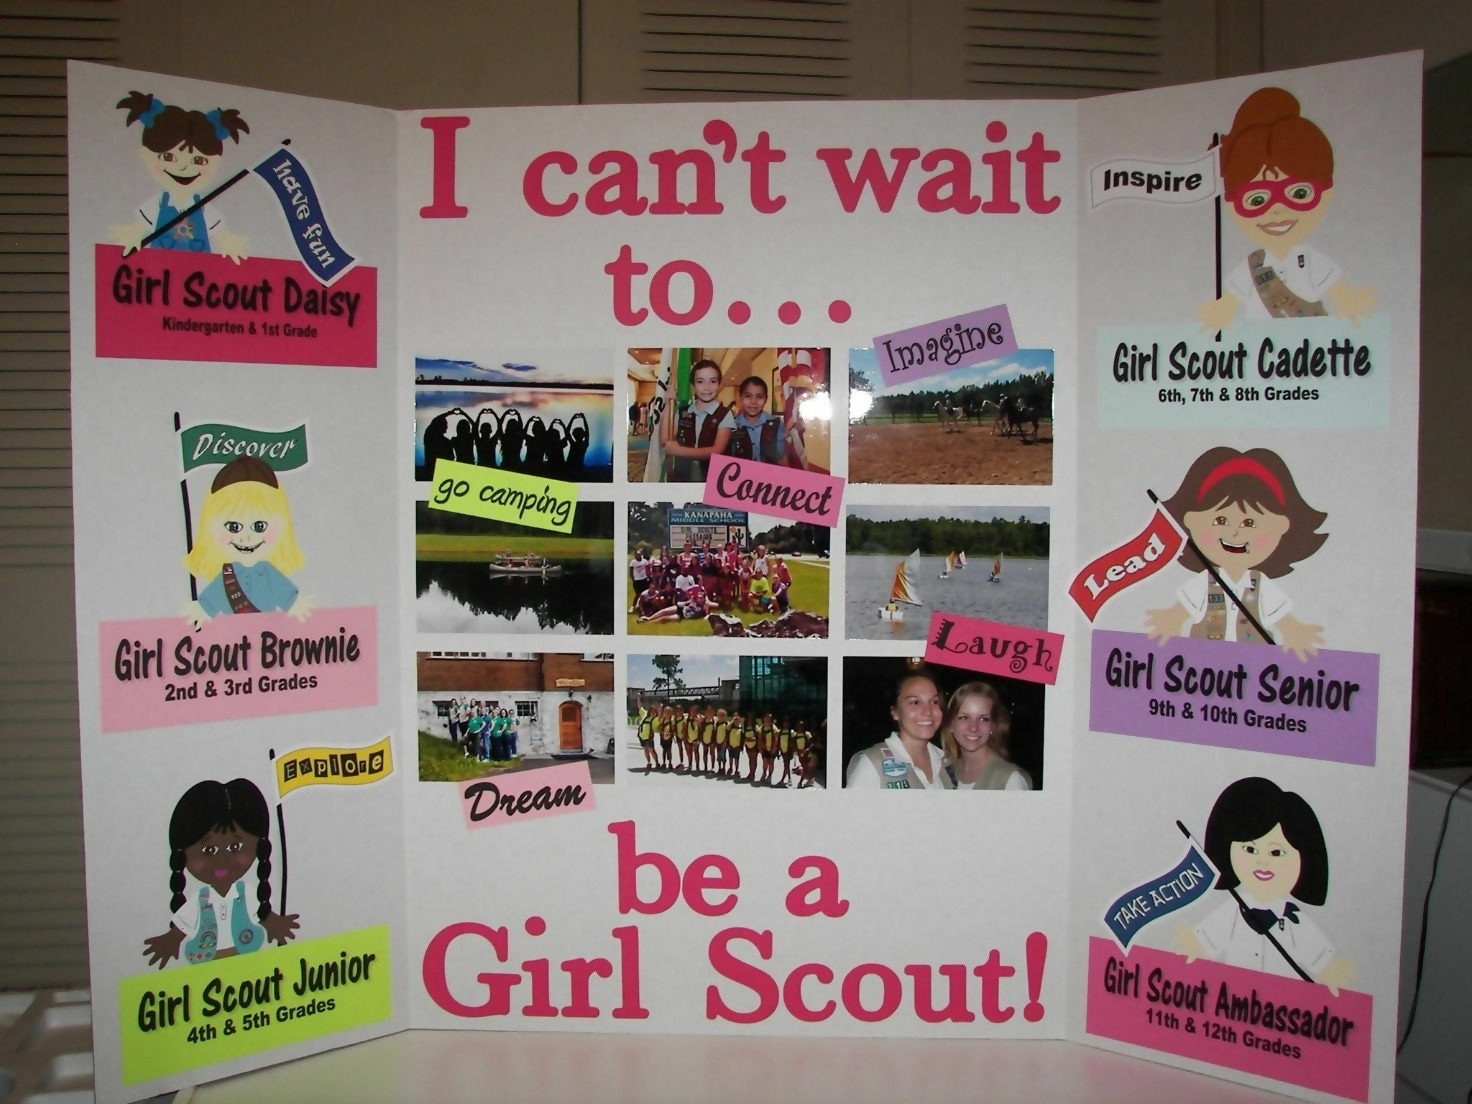 Motivational Posters in a teen Girl Scout bedroom